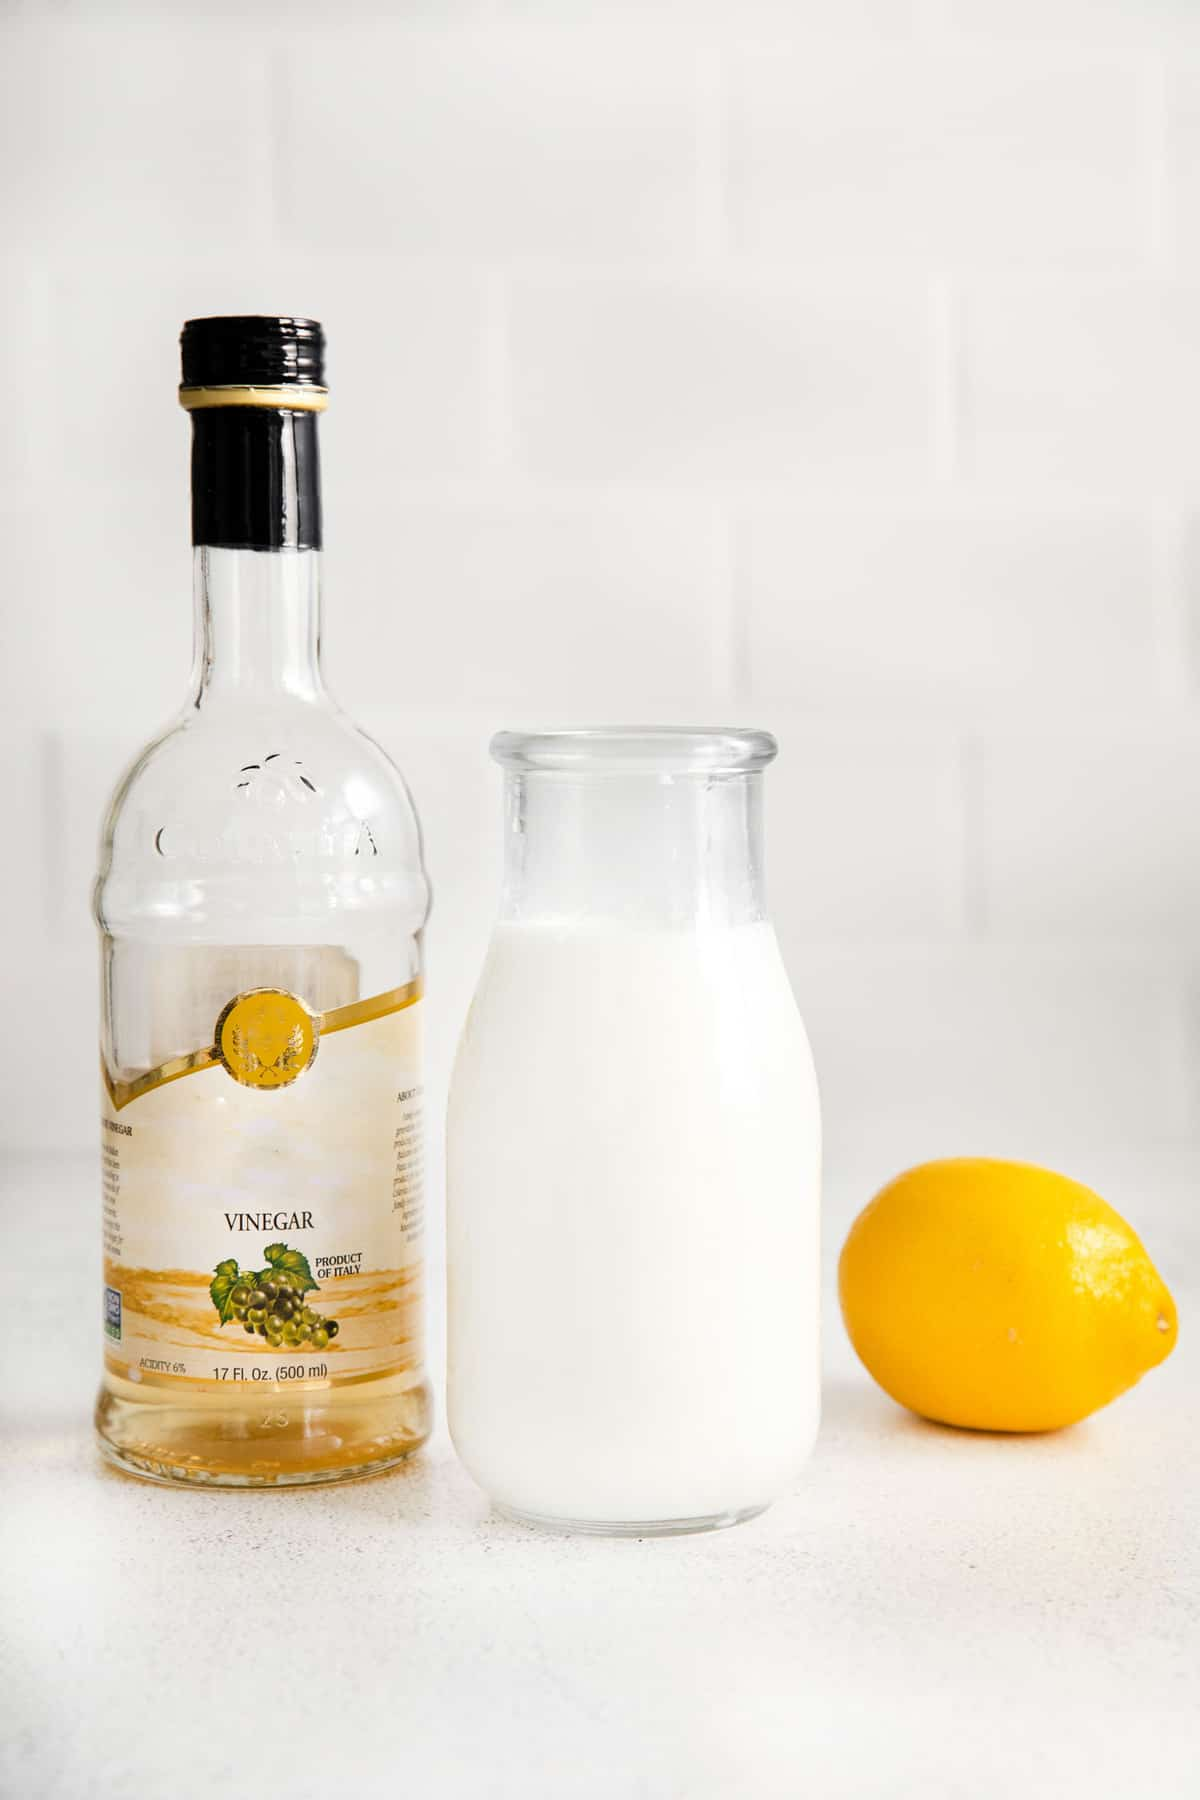 From left to right, a bottle of vinegar, a jar of milk, and a lemon.